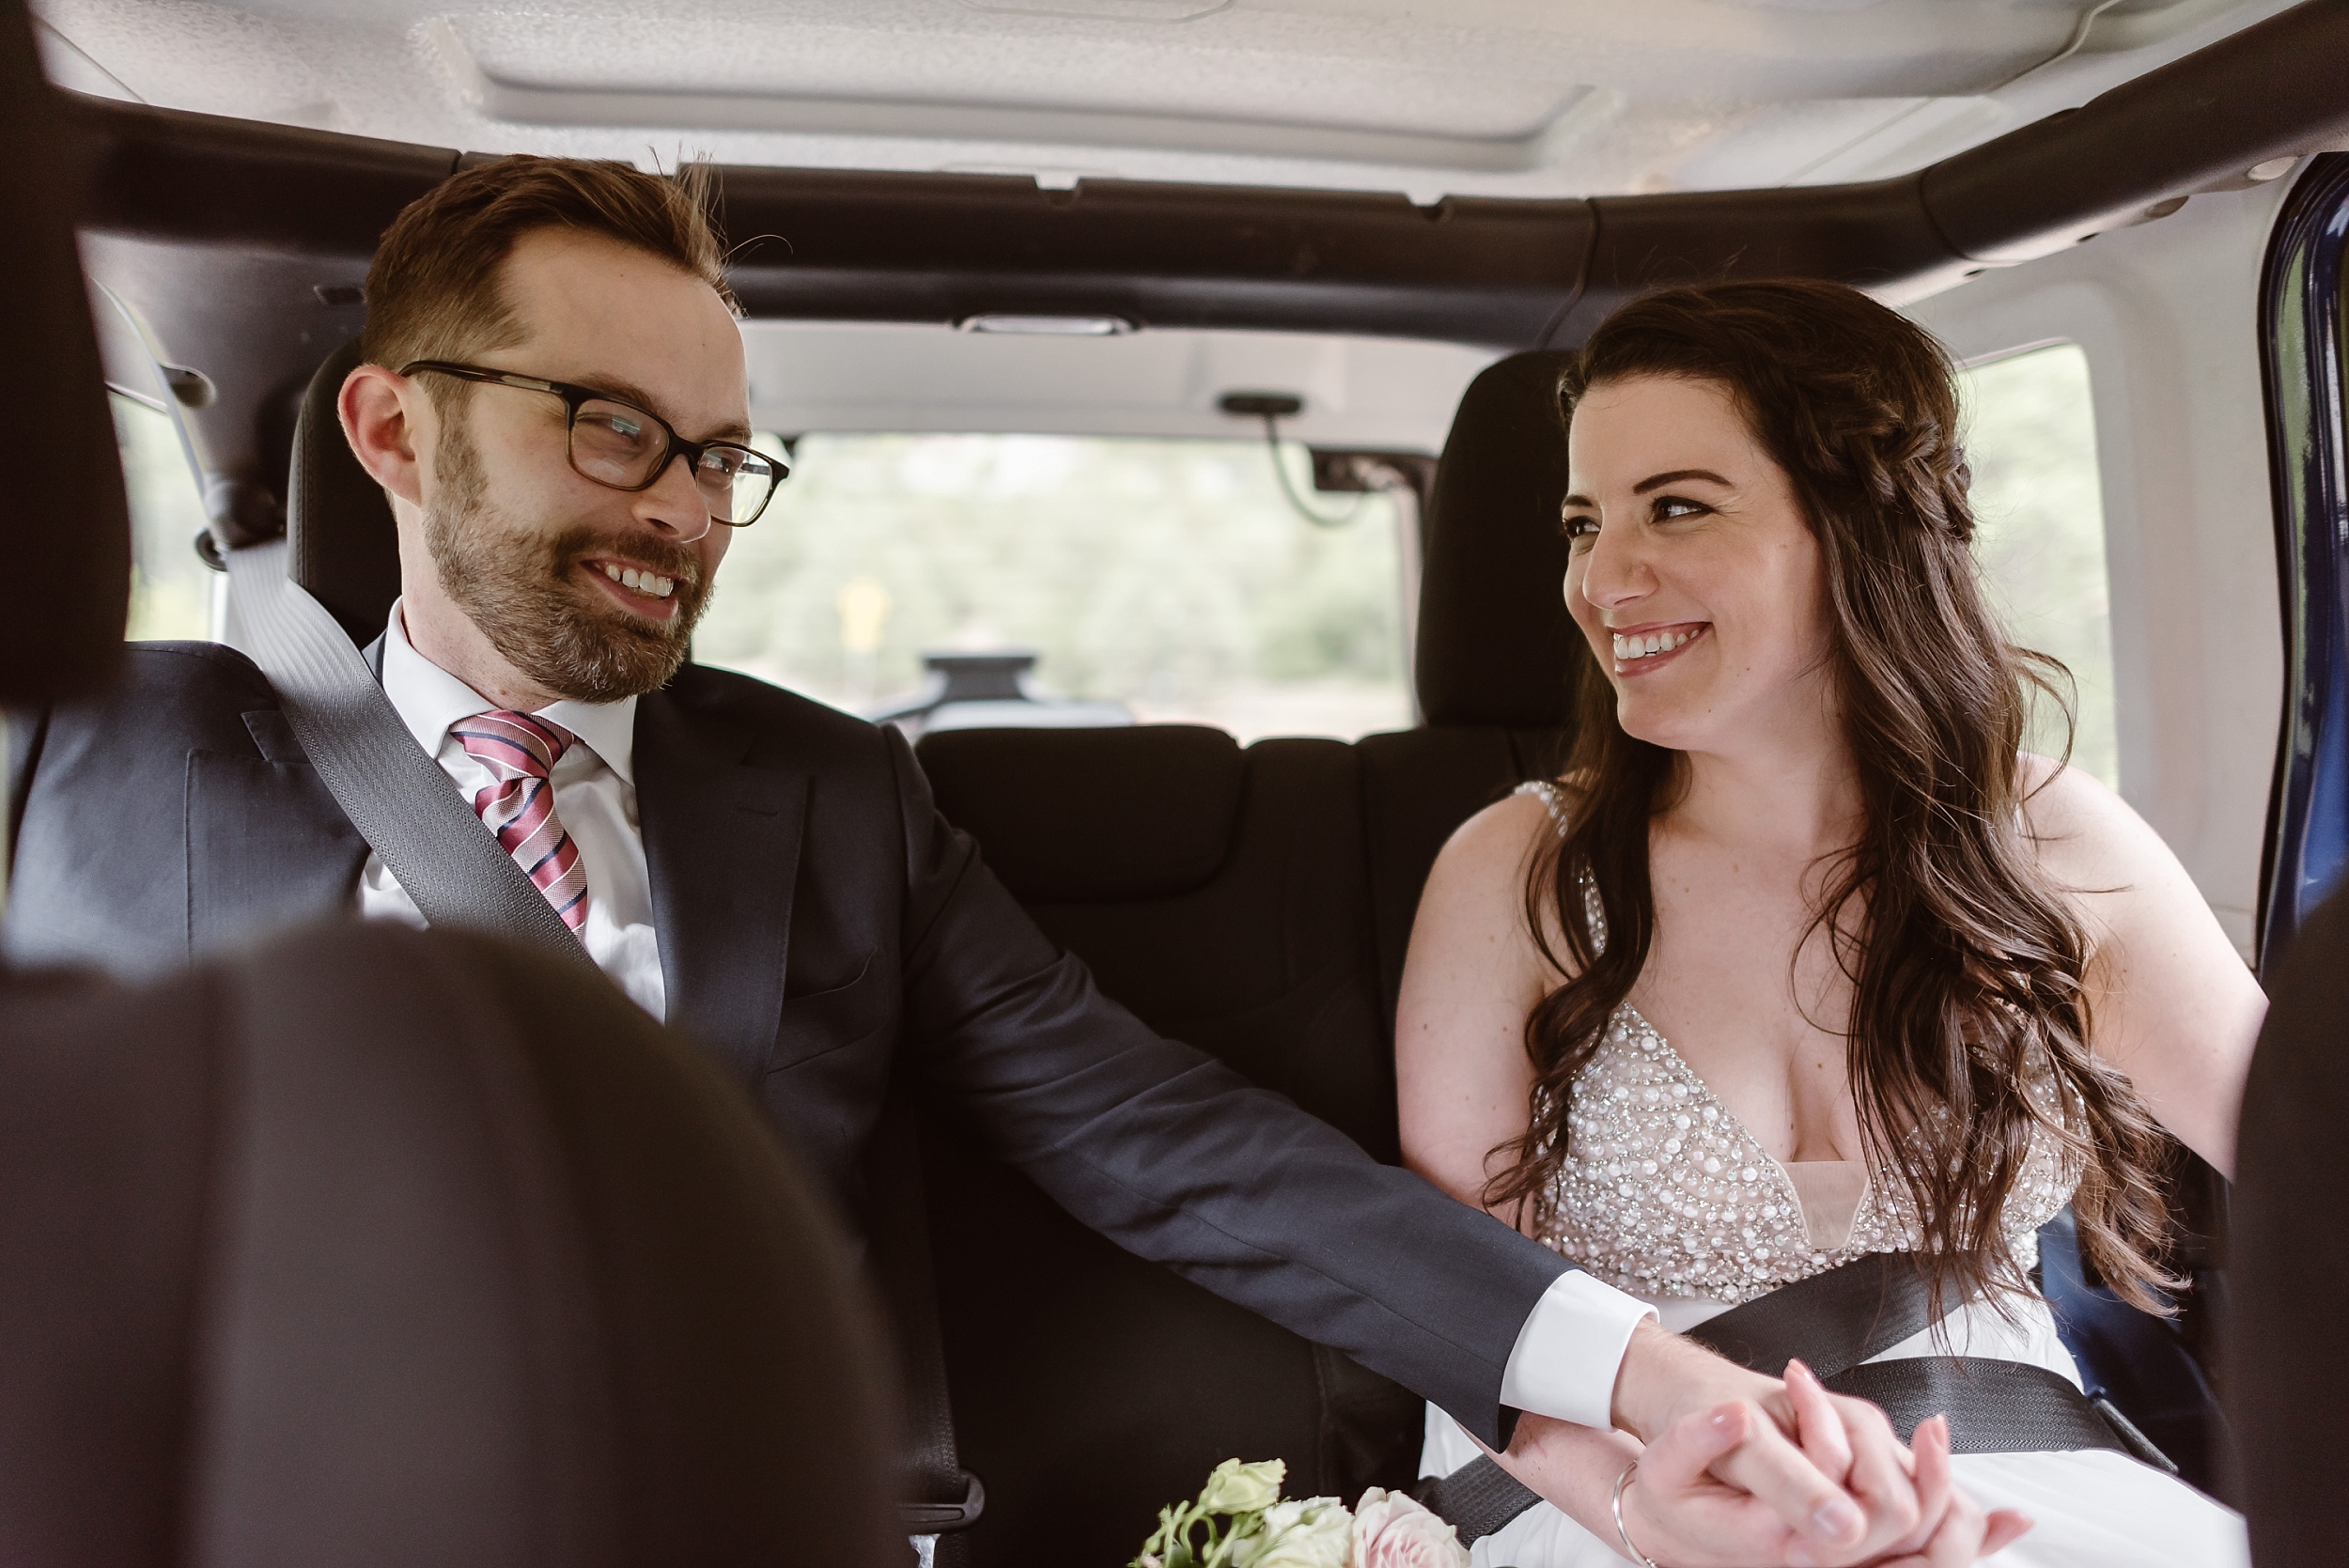 The bride and the groom buckle up in the backseat of the jeep. As Katie and Logan stare at each other, dressed in their wedding attire and prepared to start their 4x4 wedding, they grab hands and smile.